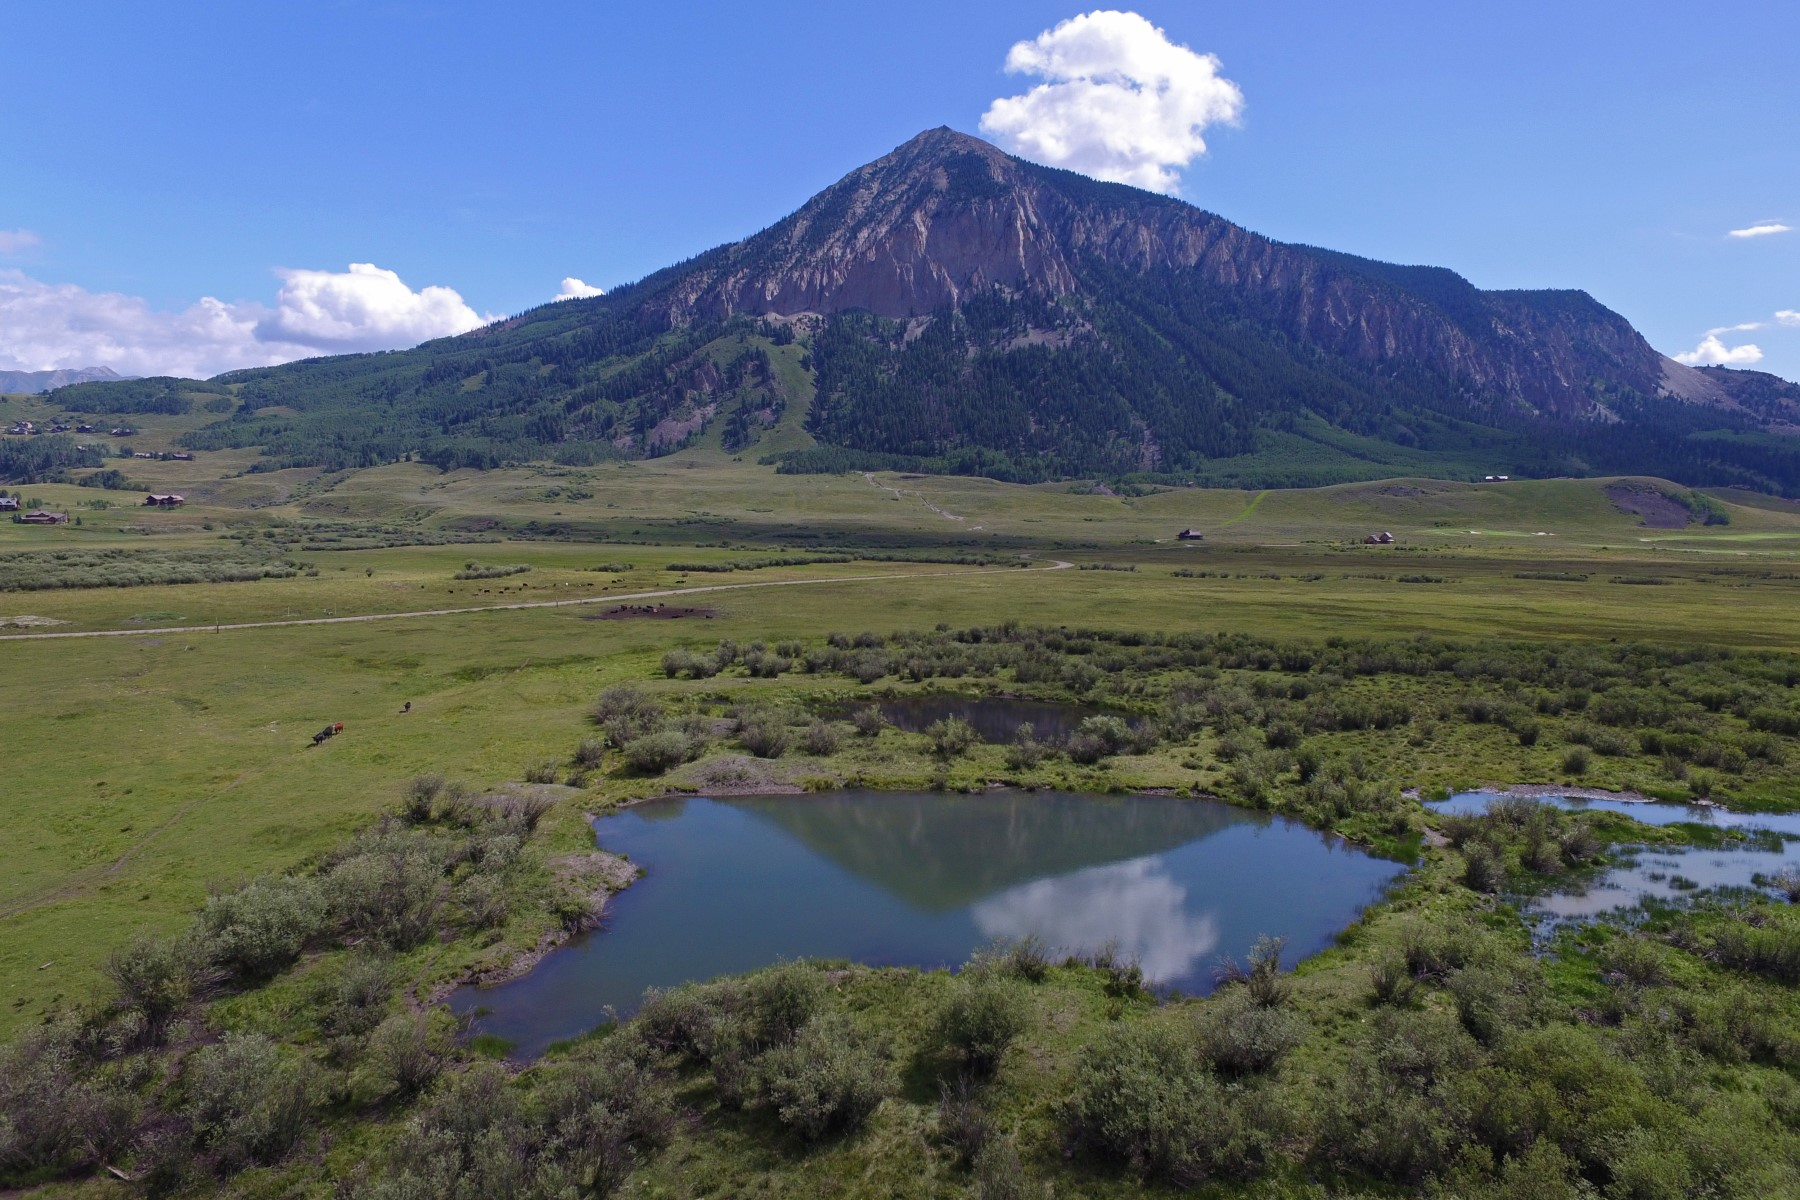 Đất đai vì Bán tại Serene Land With Grand Views 341 McCormick Ranch Road Crested Butte, Colorado, 81224 Hoa Kỳ